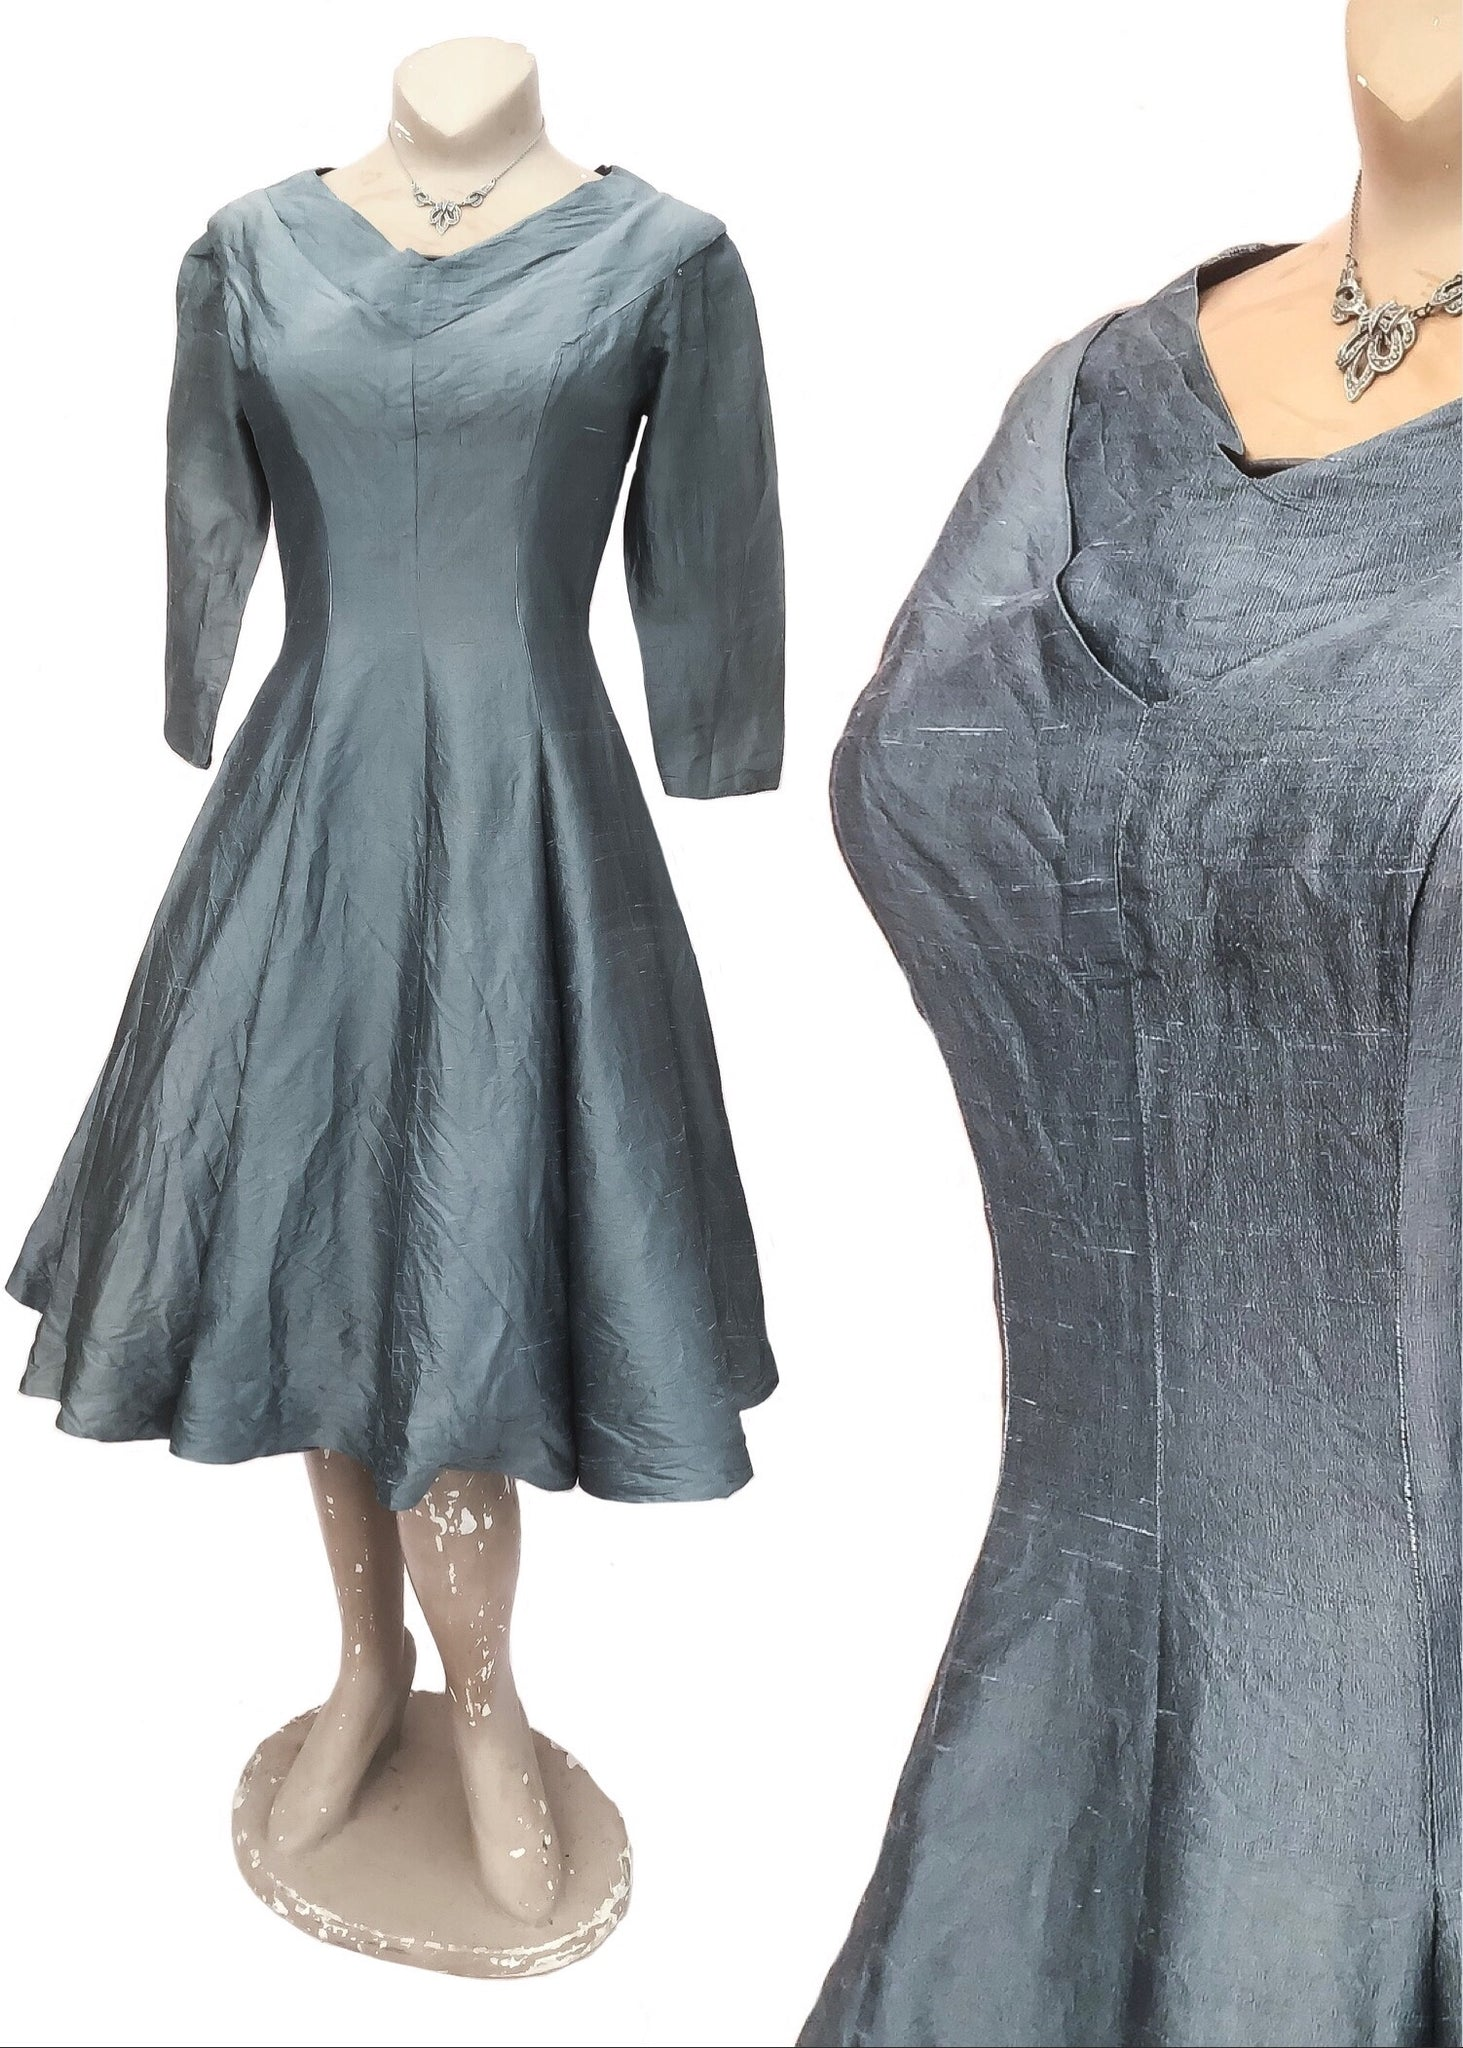 silver grey raw silk fit and flare cocktail party dress